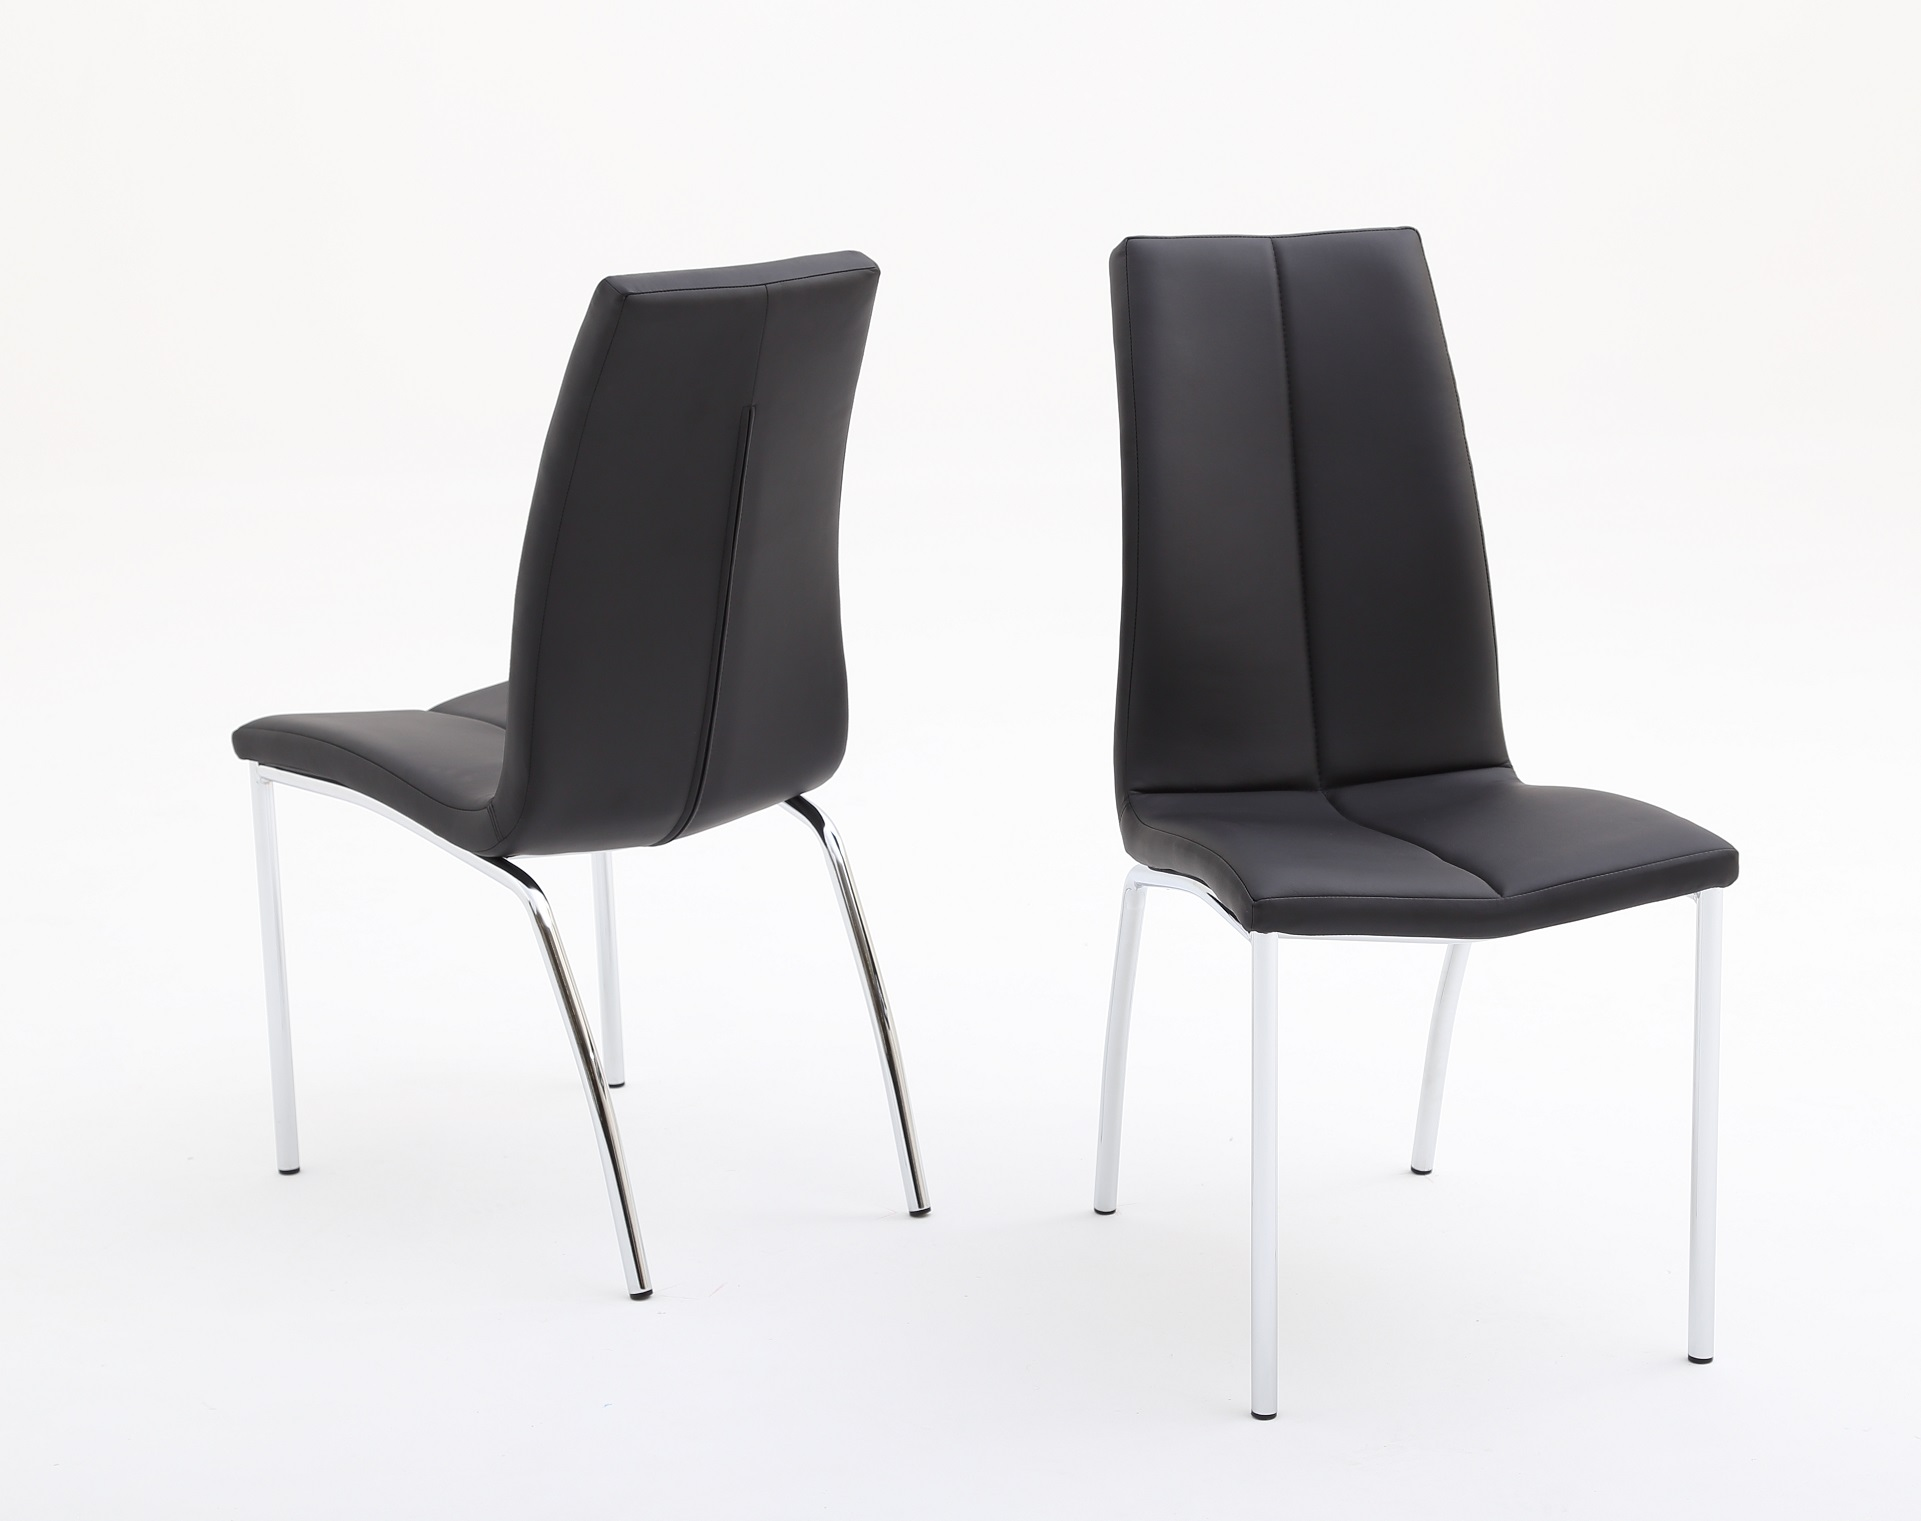 https://www.firstfurniture.co.uk/pub/media/catalog/product/a/v/ava_chair_black.jpg